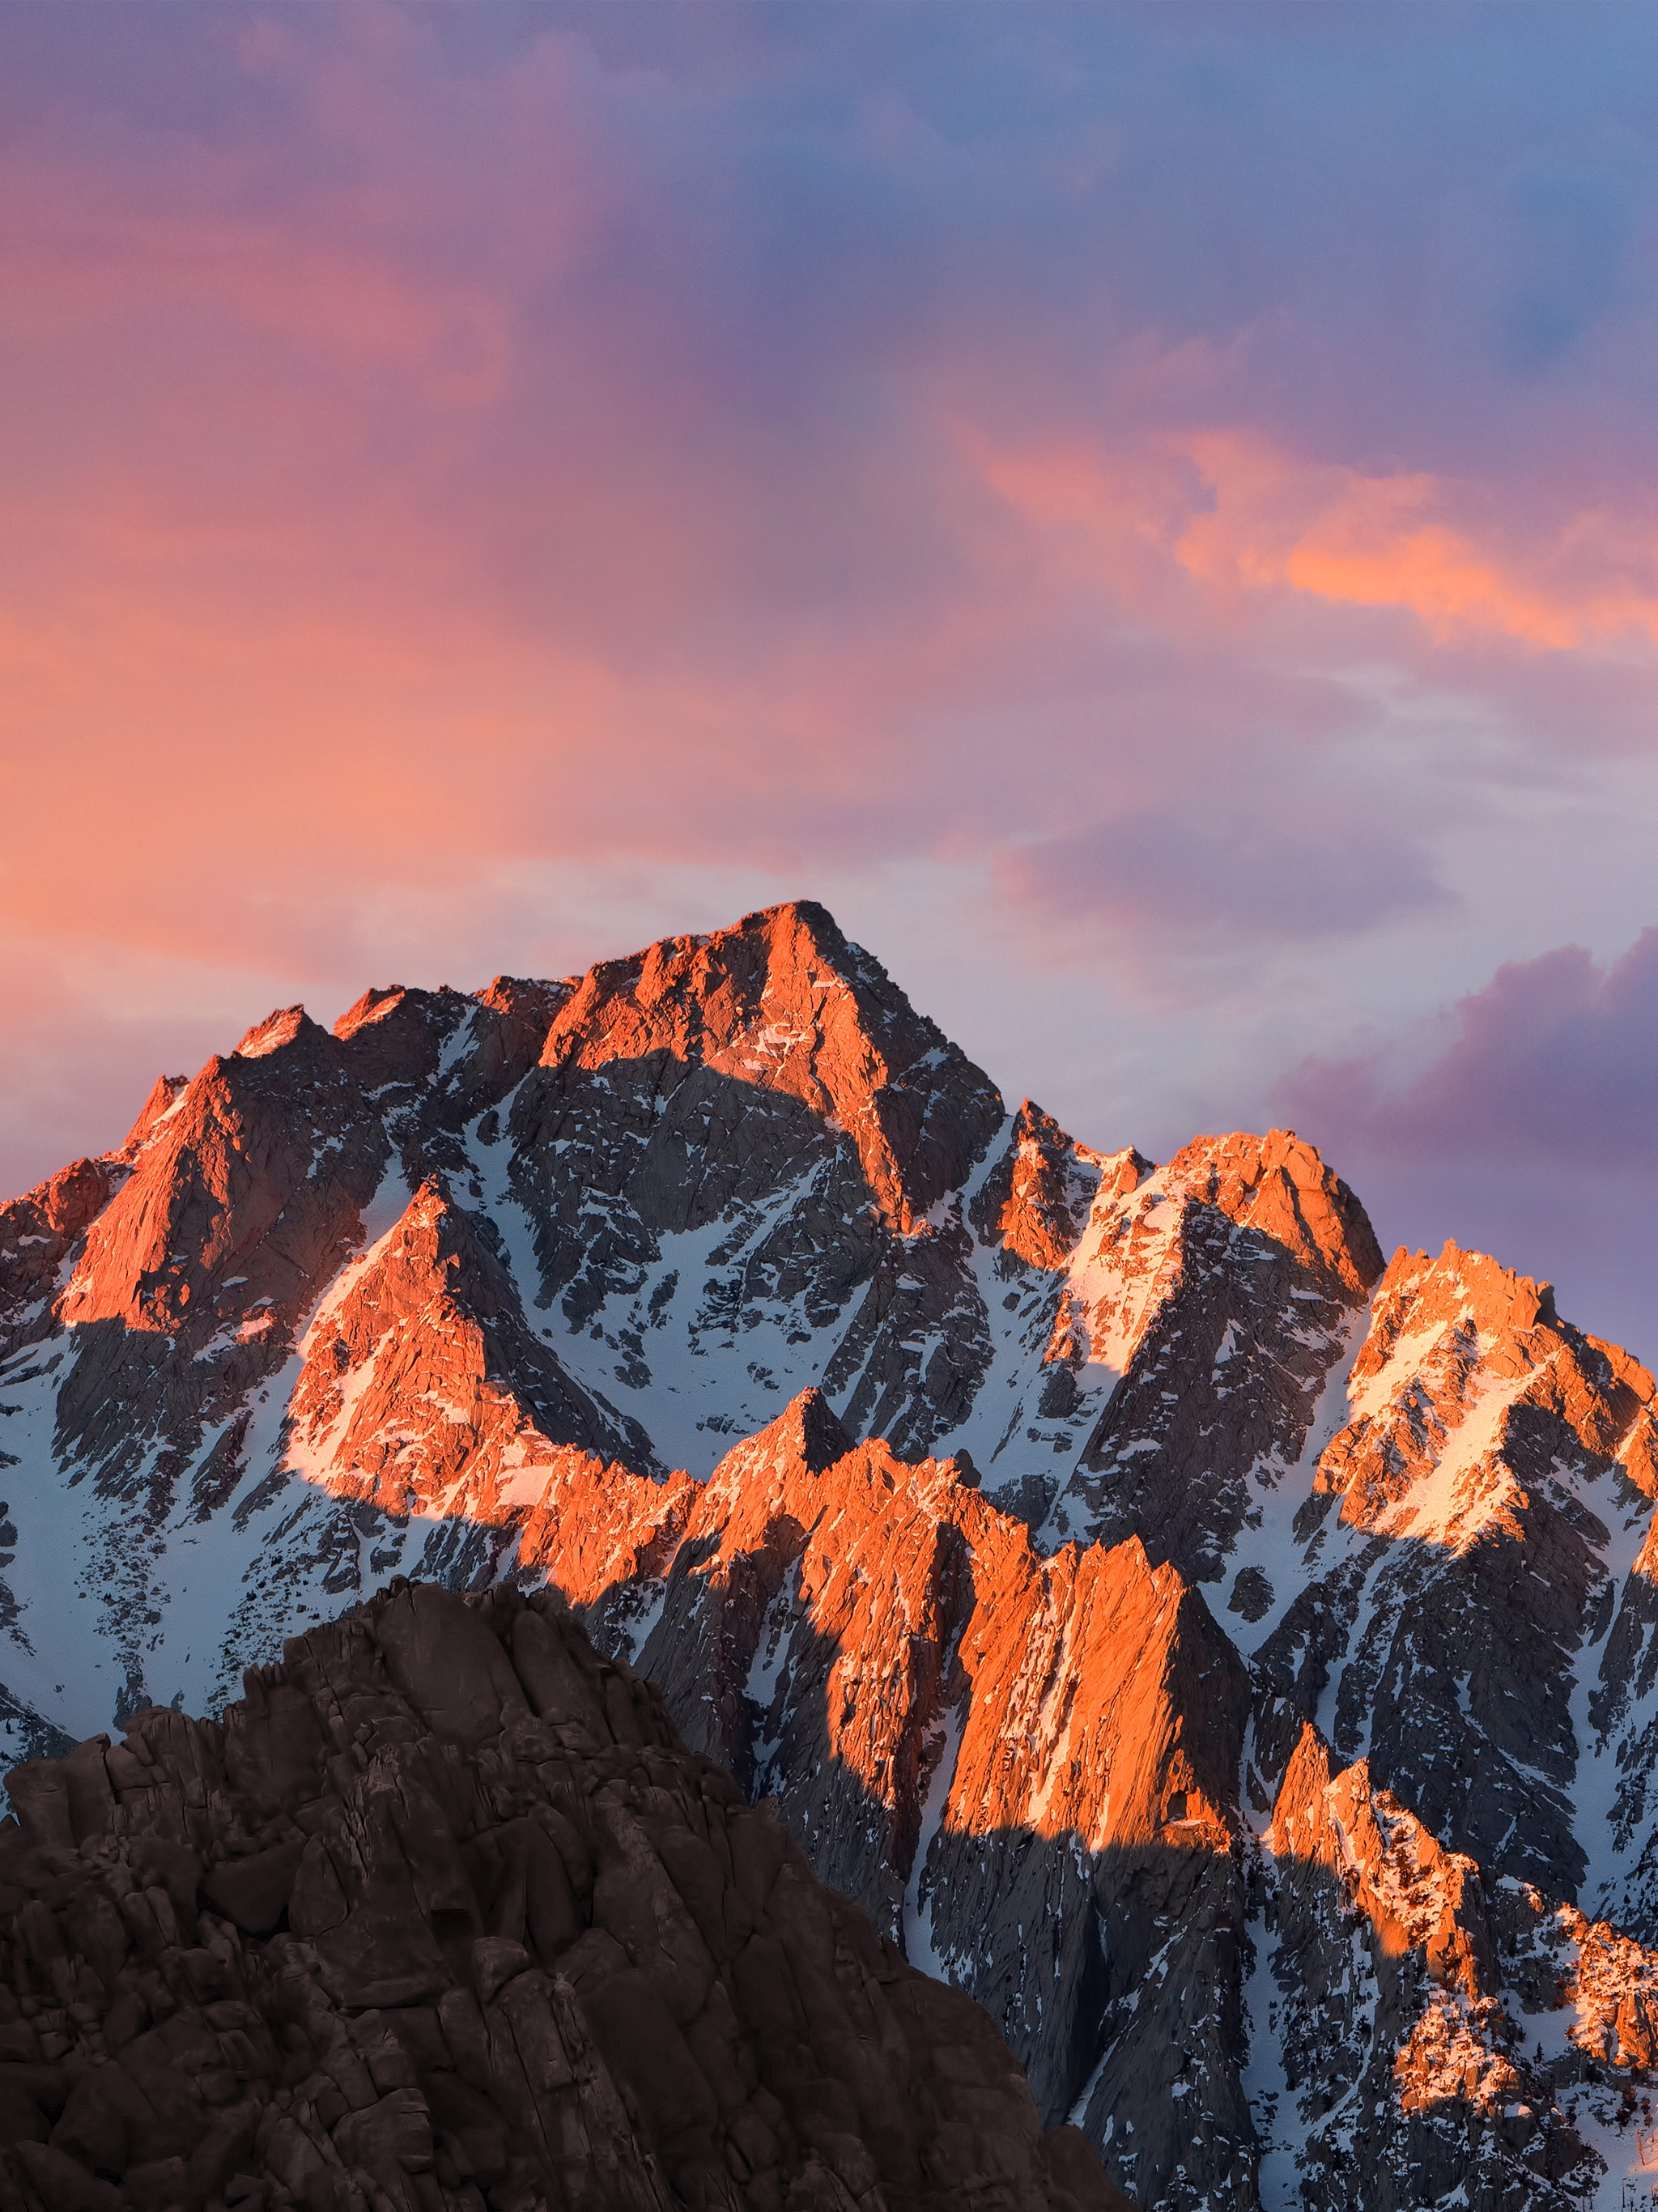 Download macos sierra and ios 10 wallpaper high res - Mac os x wallpaper 1920x1080 ...